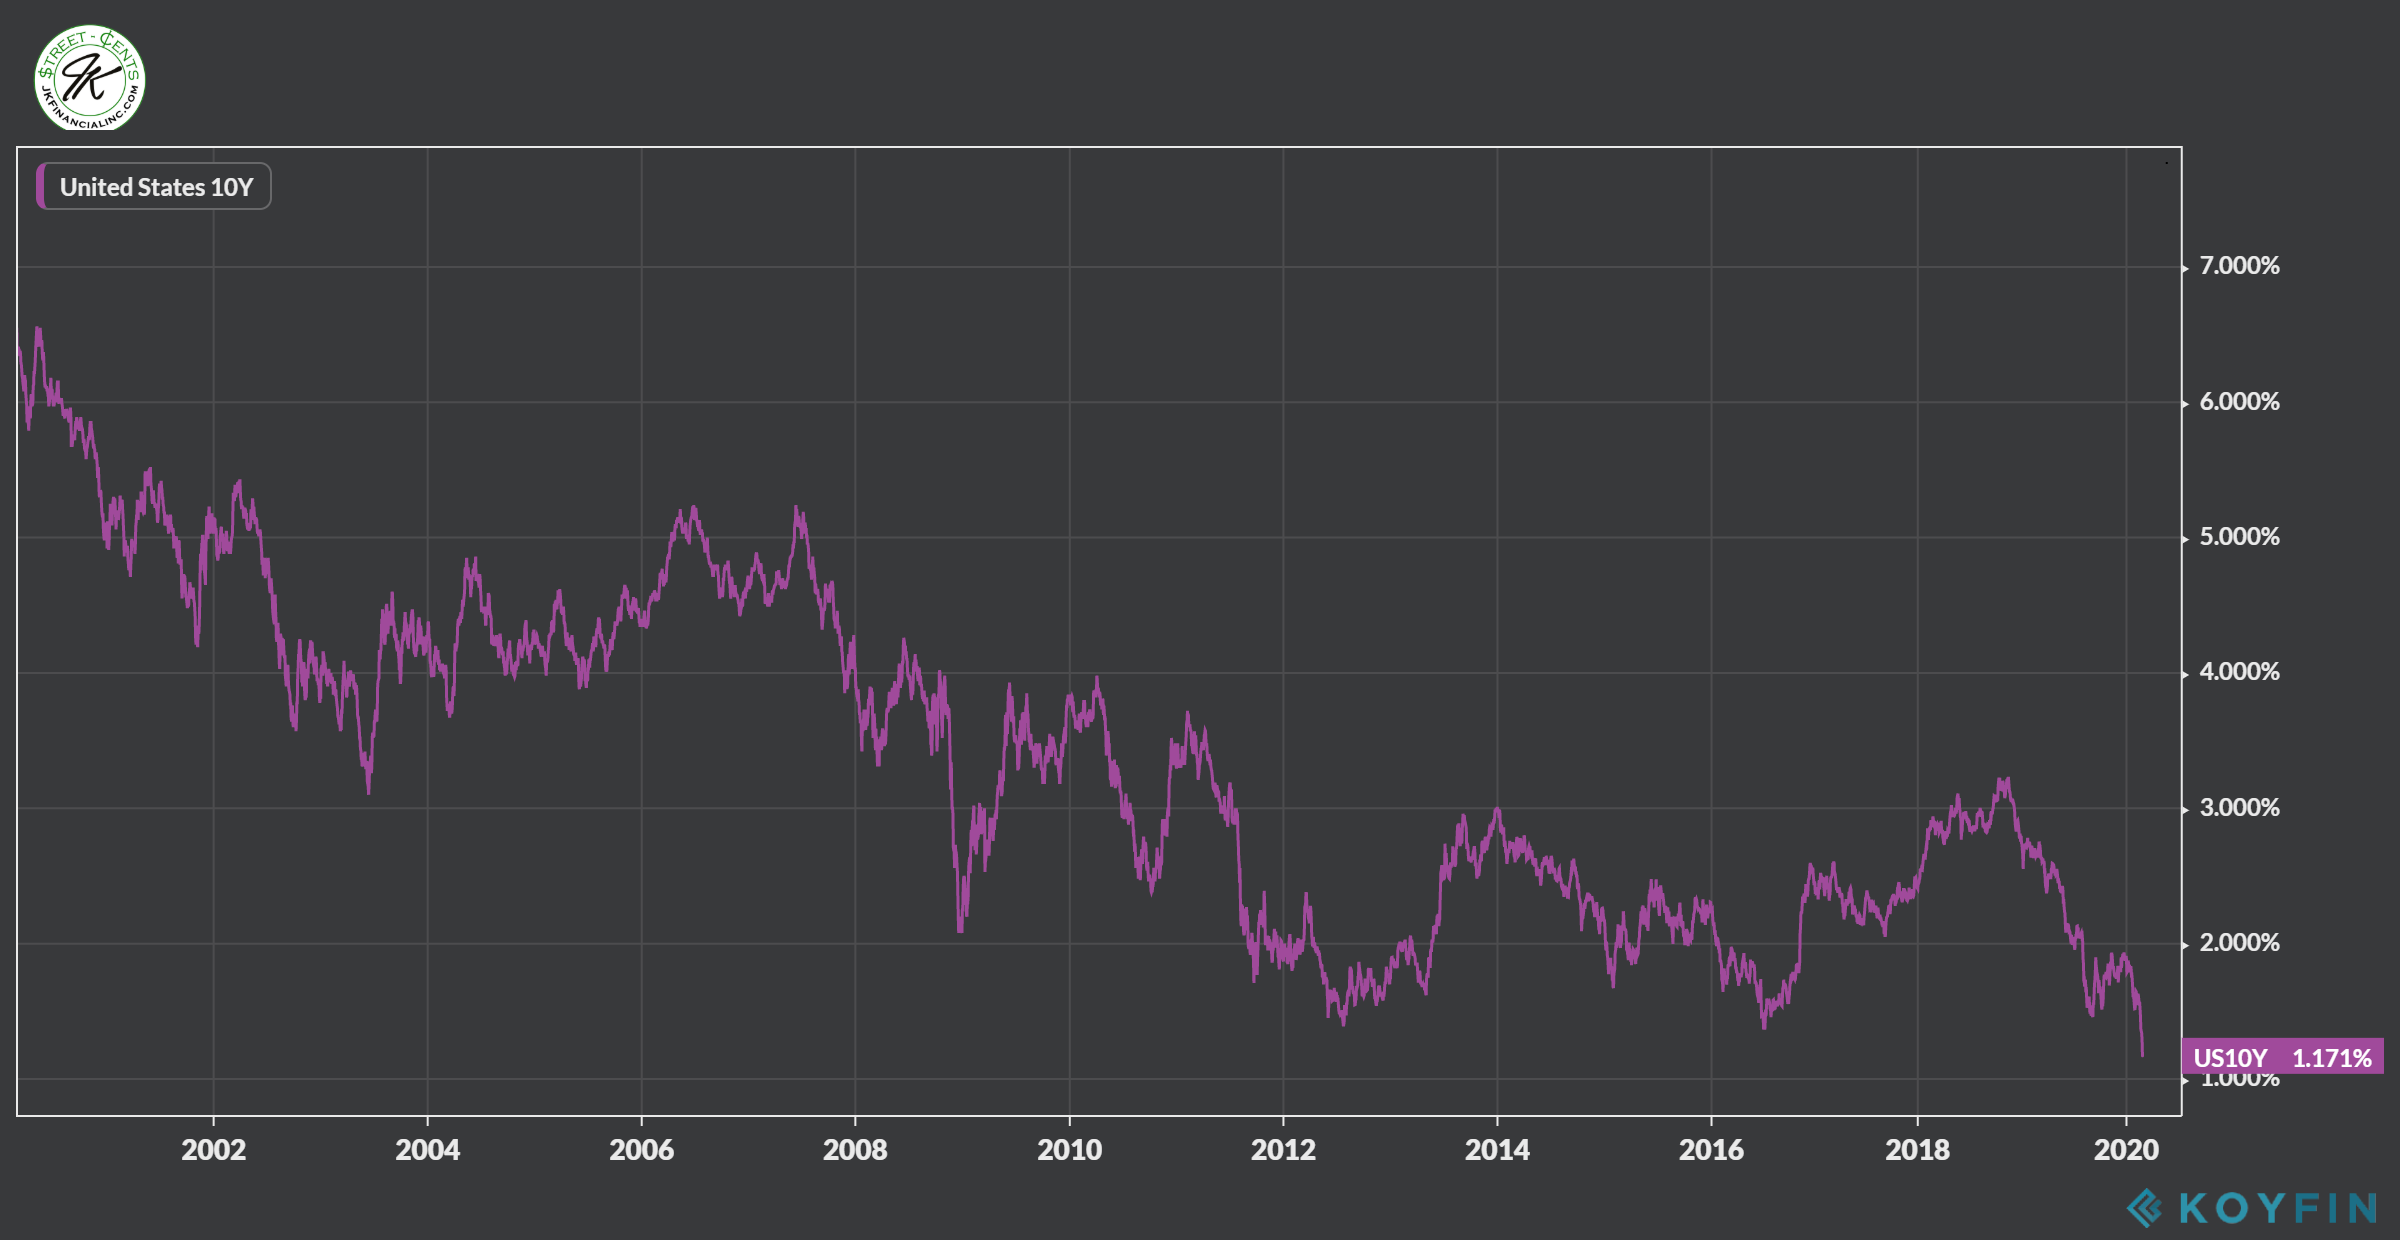 3-1-20 Treasury 10 year all time low